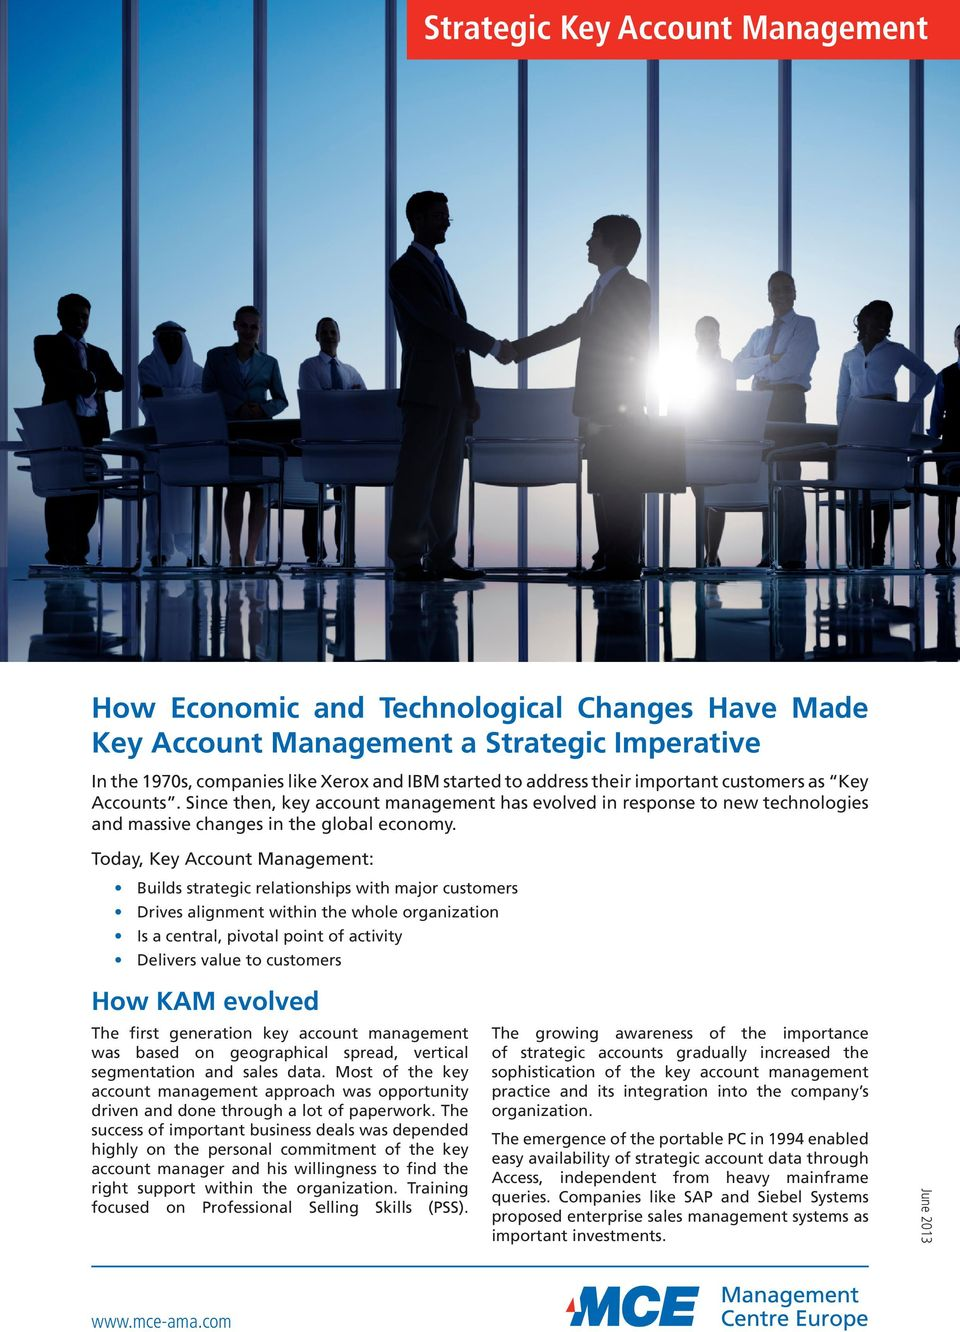 Today, Key Account Management: Builds strategic relationships with major customers Drives alignment within the whole organization Is a central, pivotal point of activity Delivers value to customers